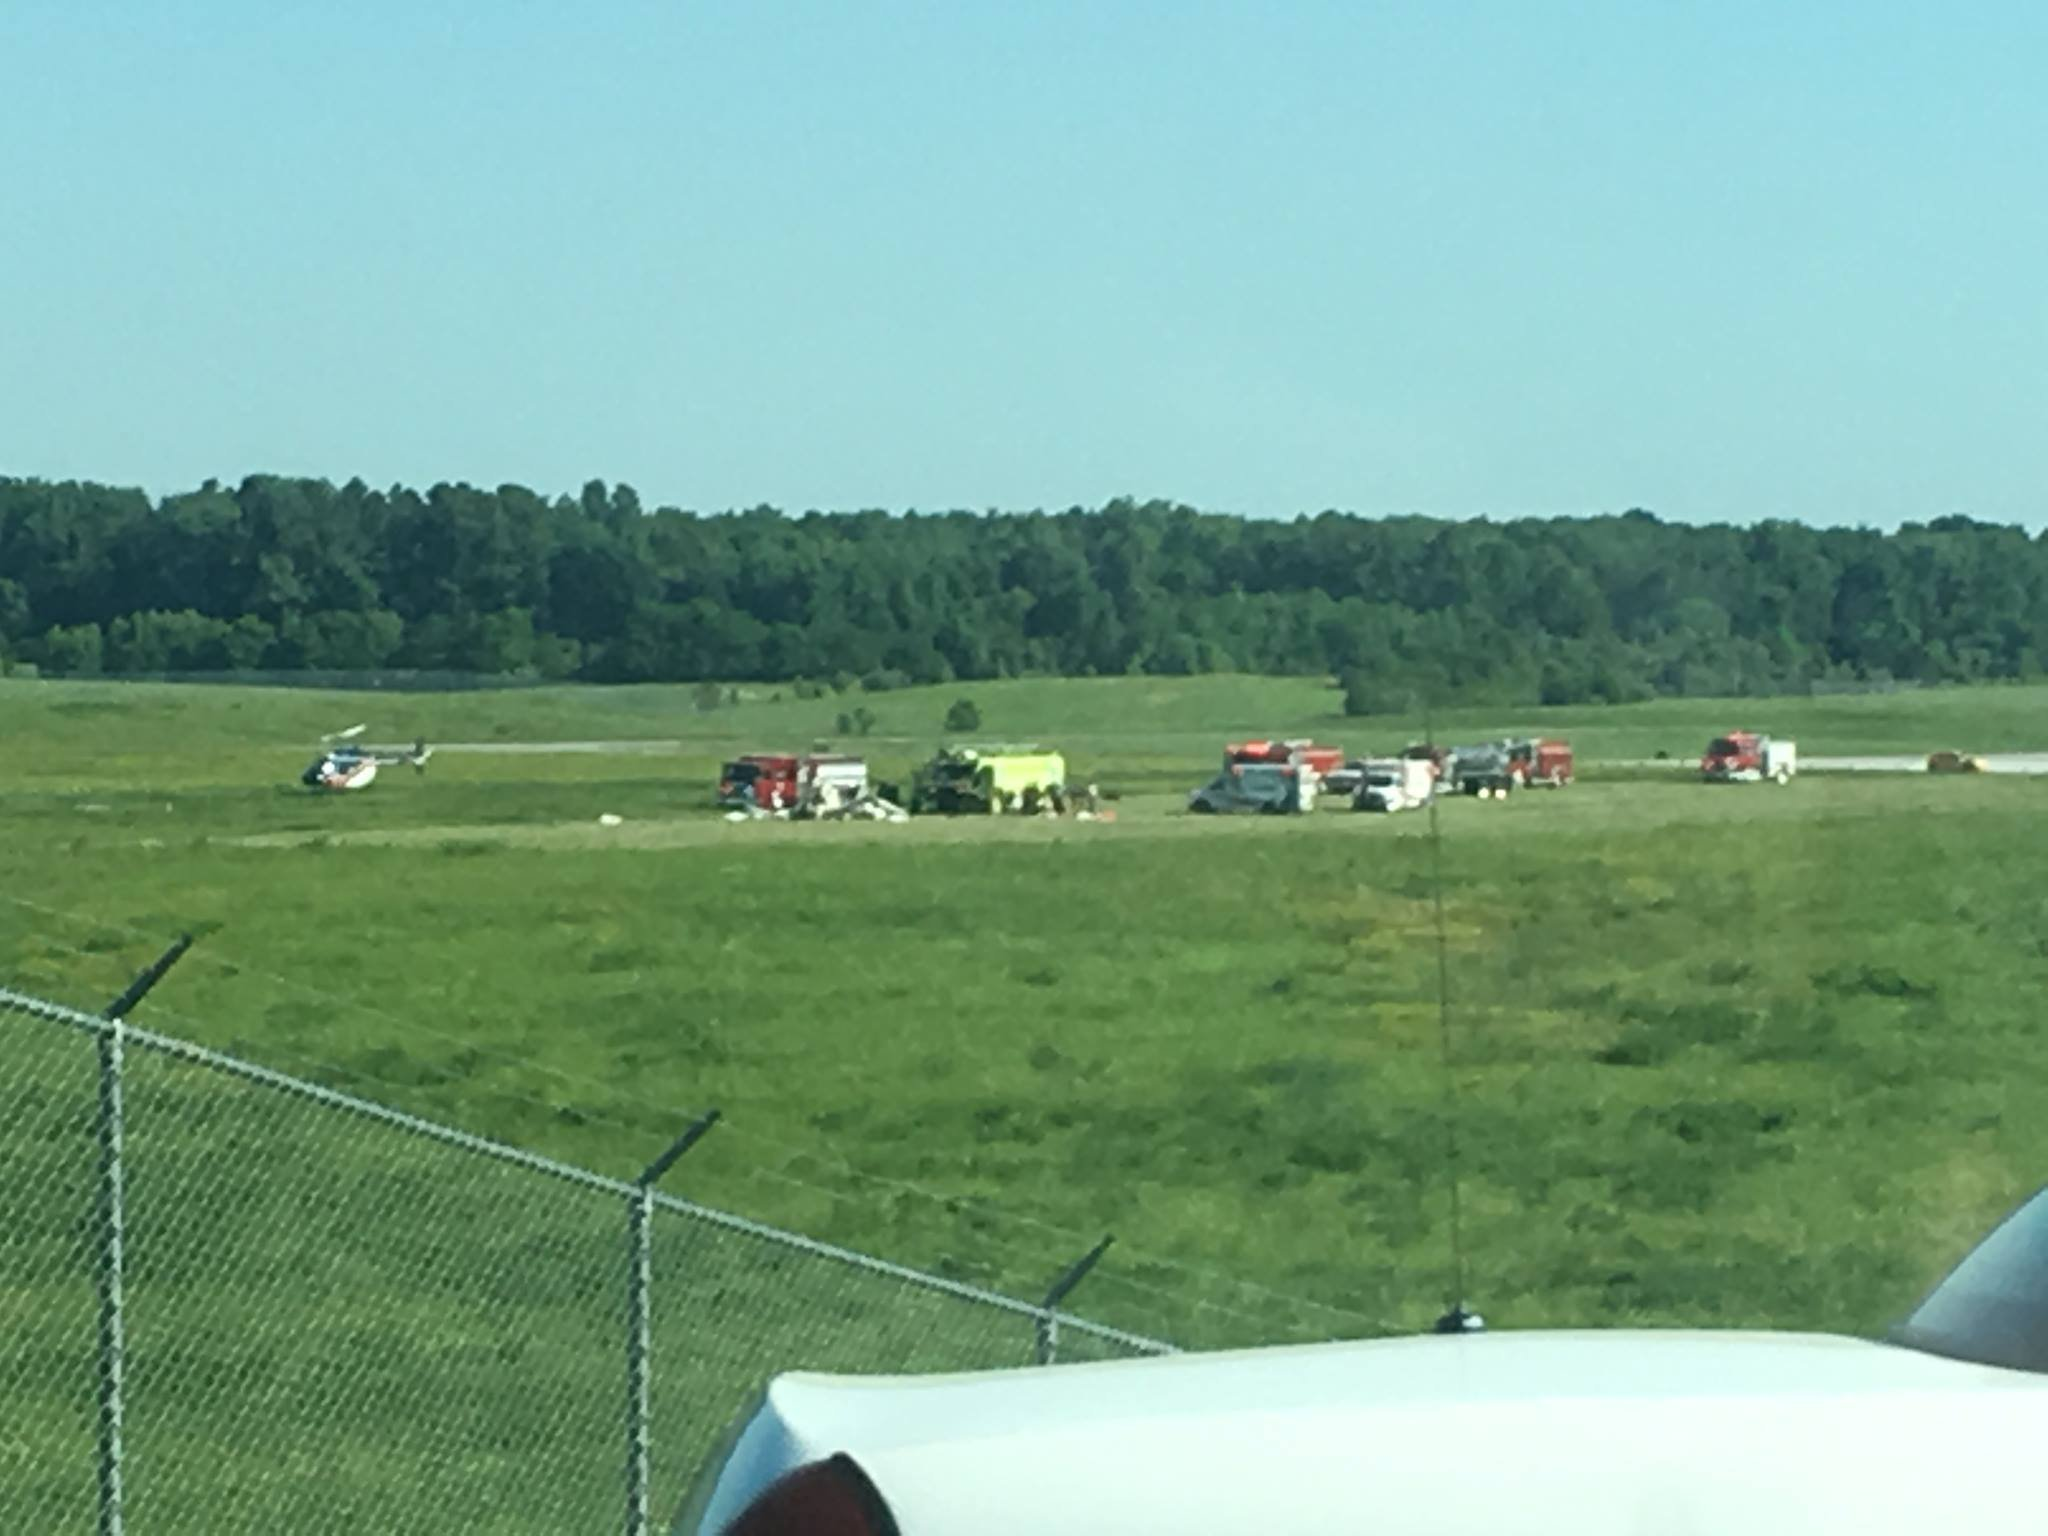 Illinois marion county vernon - 1 Dead 1 Injured In Plane Crash At Williamson County Airport